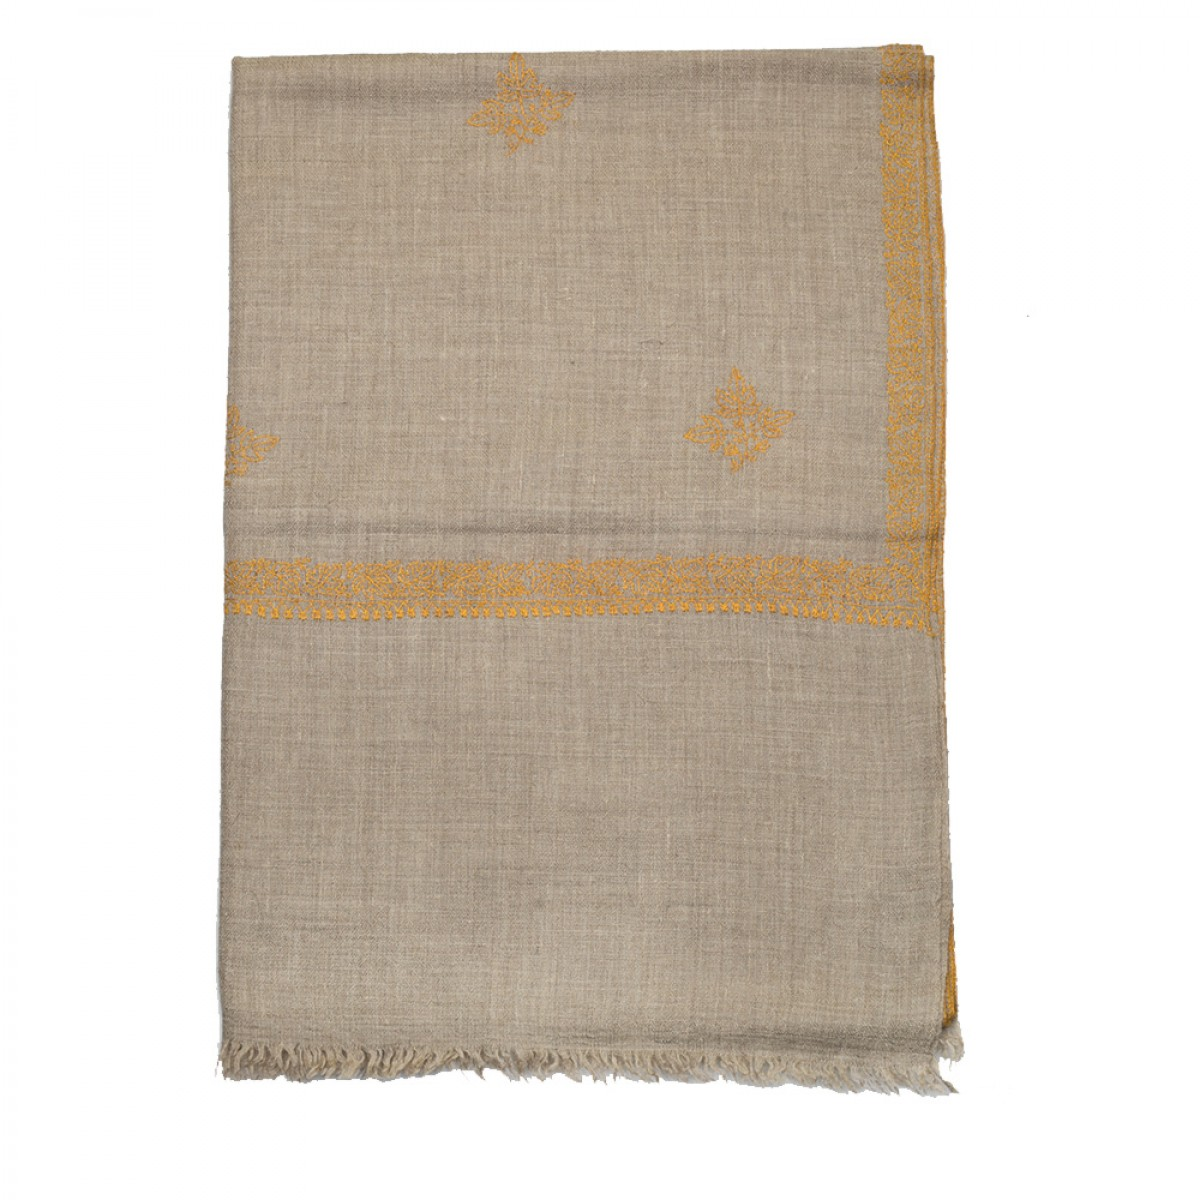 Embroidered Pashmina stole - Natural & Mustard